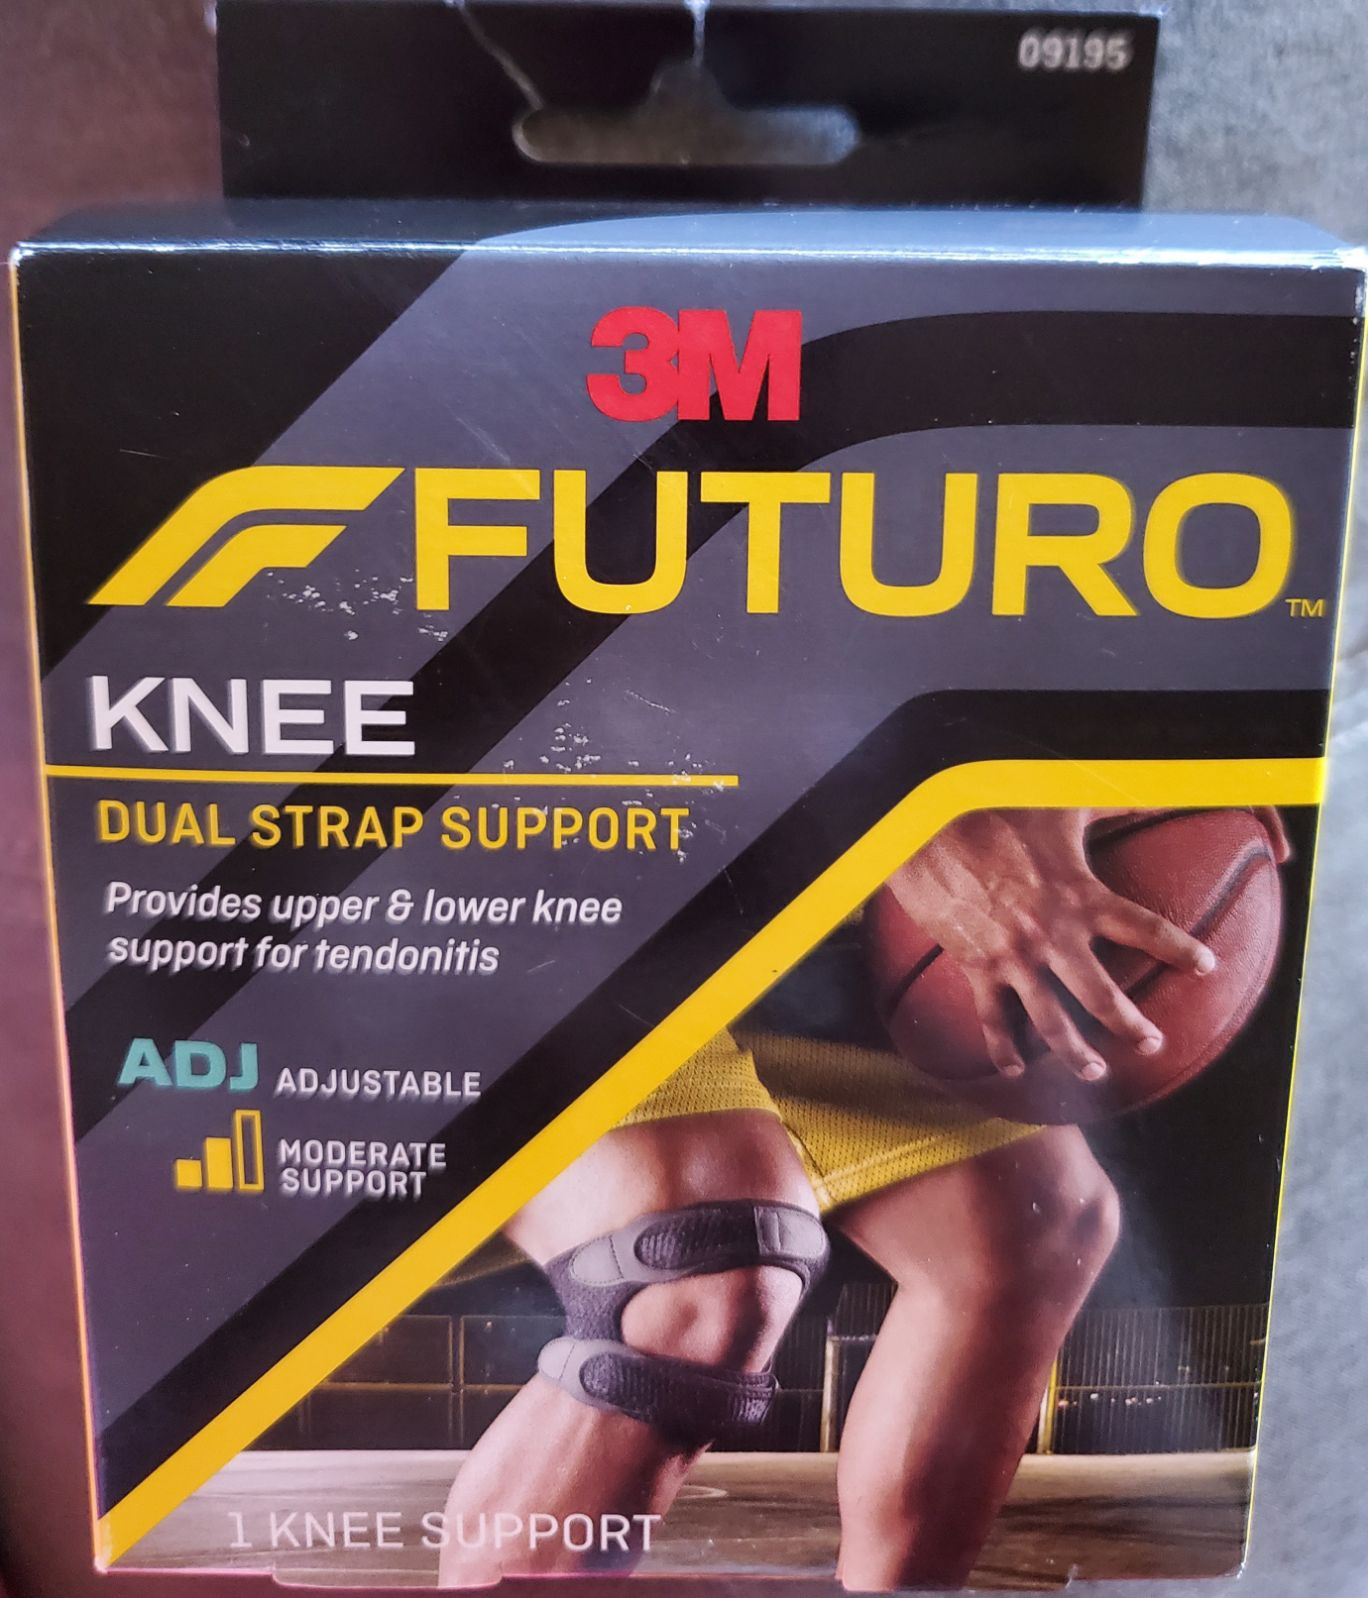 KNEE,DUAL STRAP SUPPORT